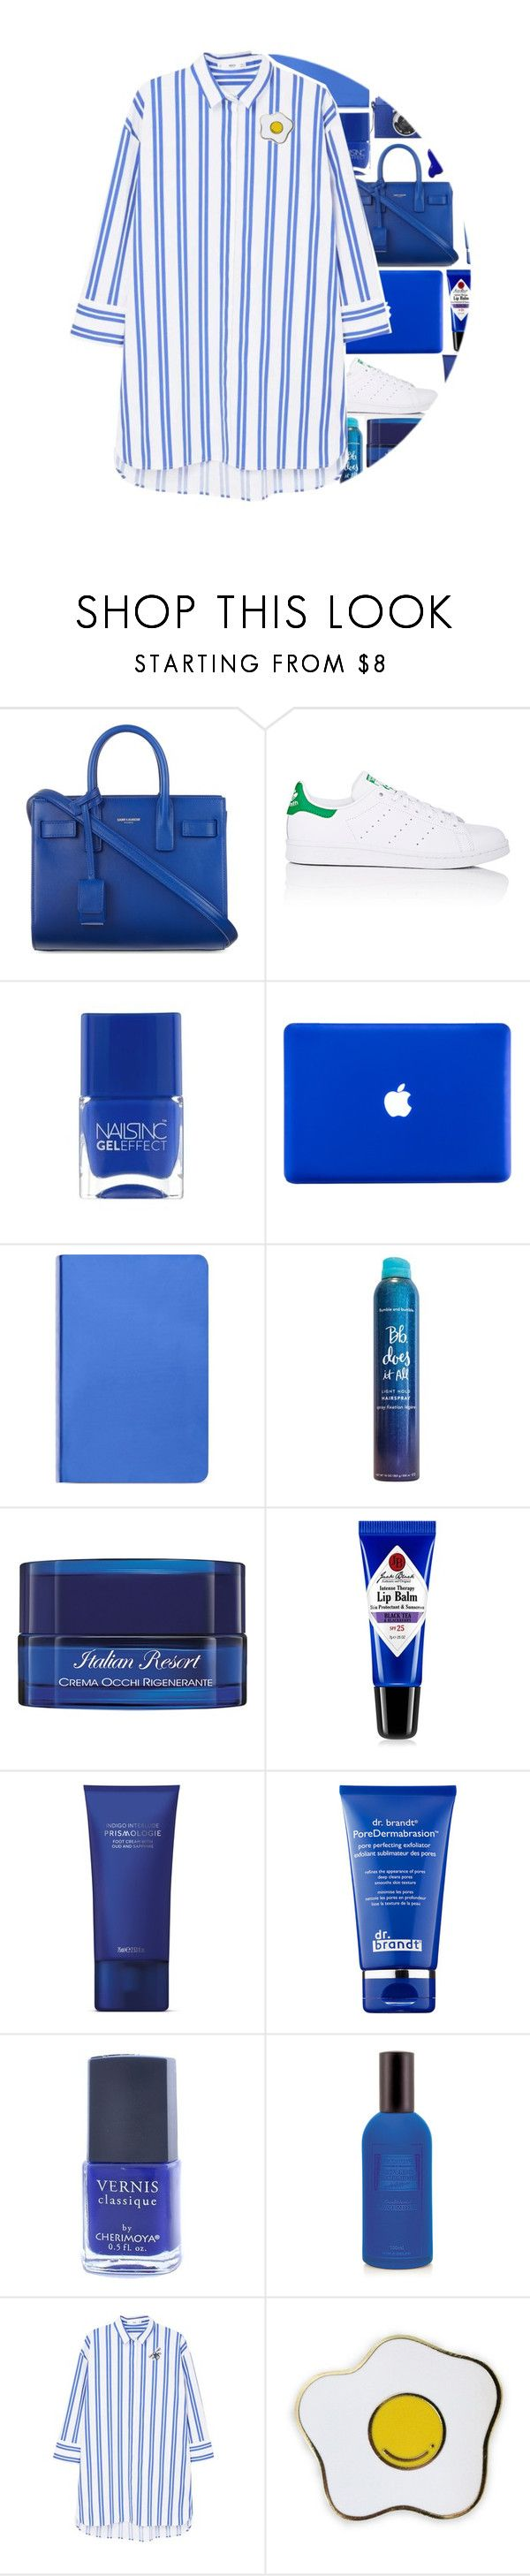 """""""blue"""" by maevekaterina ❤ liked on Polyvore featuring Yves Saint Laurent, adidas, Nails Inc., Nuuna, Bumble and bumble, Acqua di Parma, Jack Black, Space NK, Dr. Brandt and Classique"""